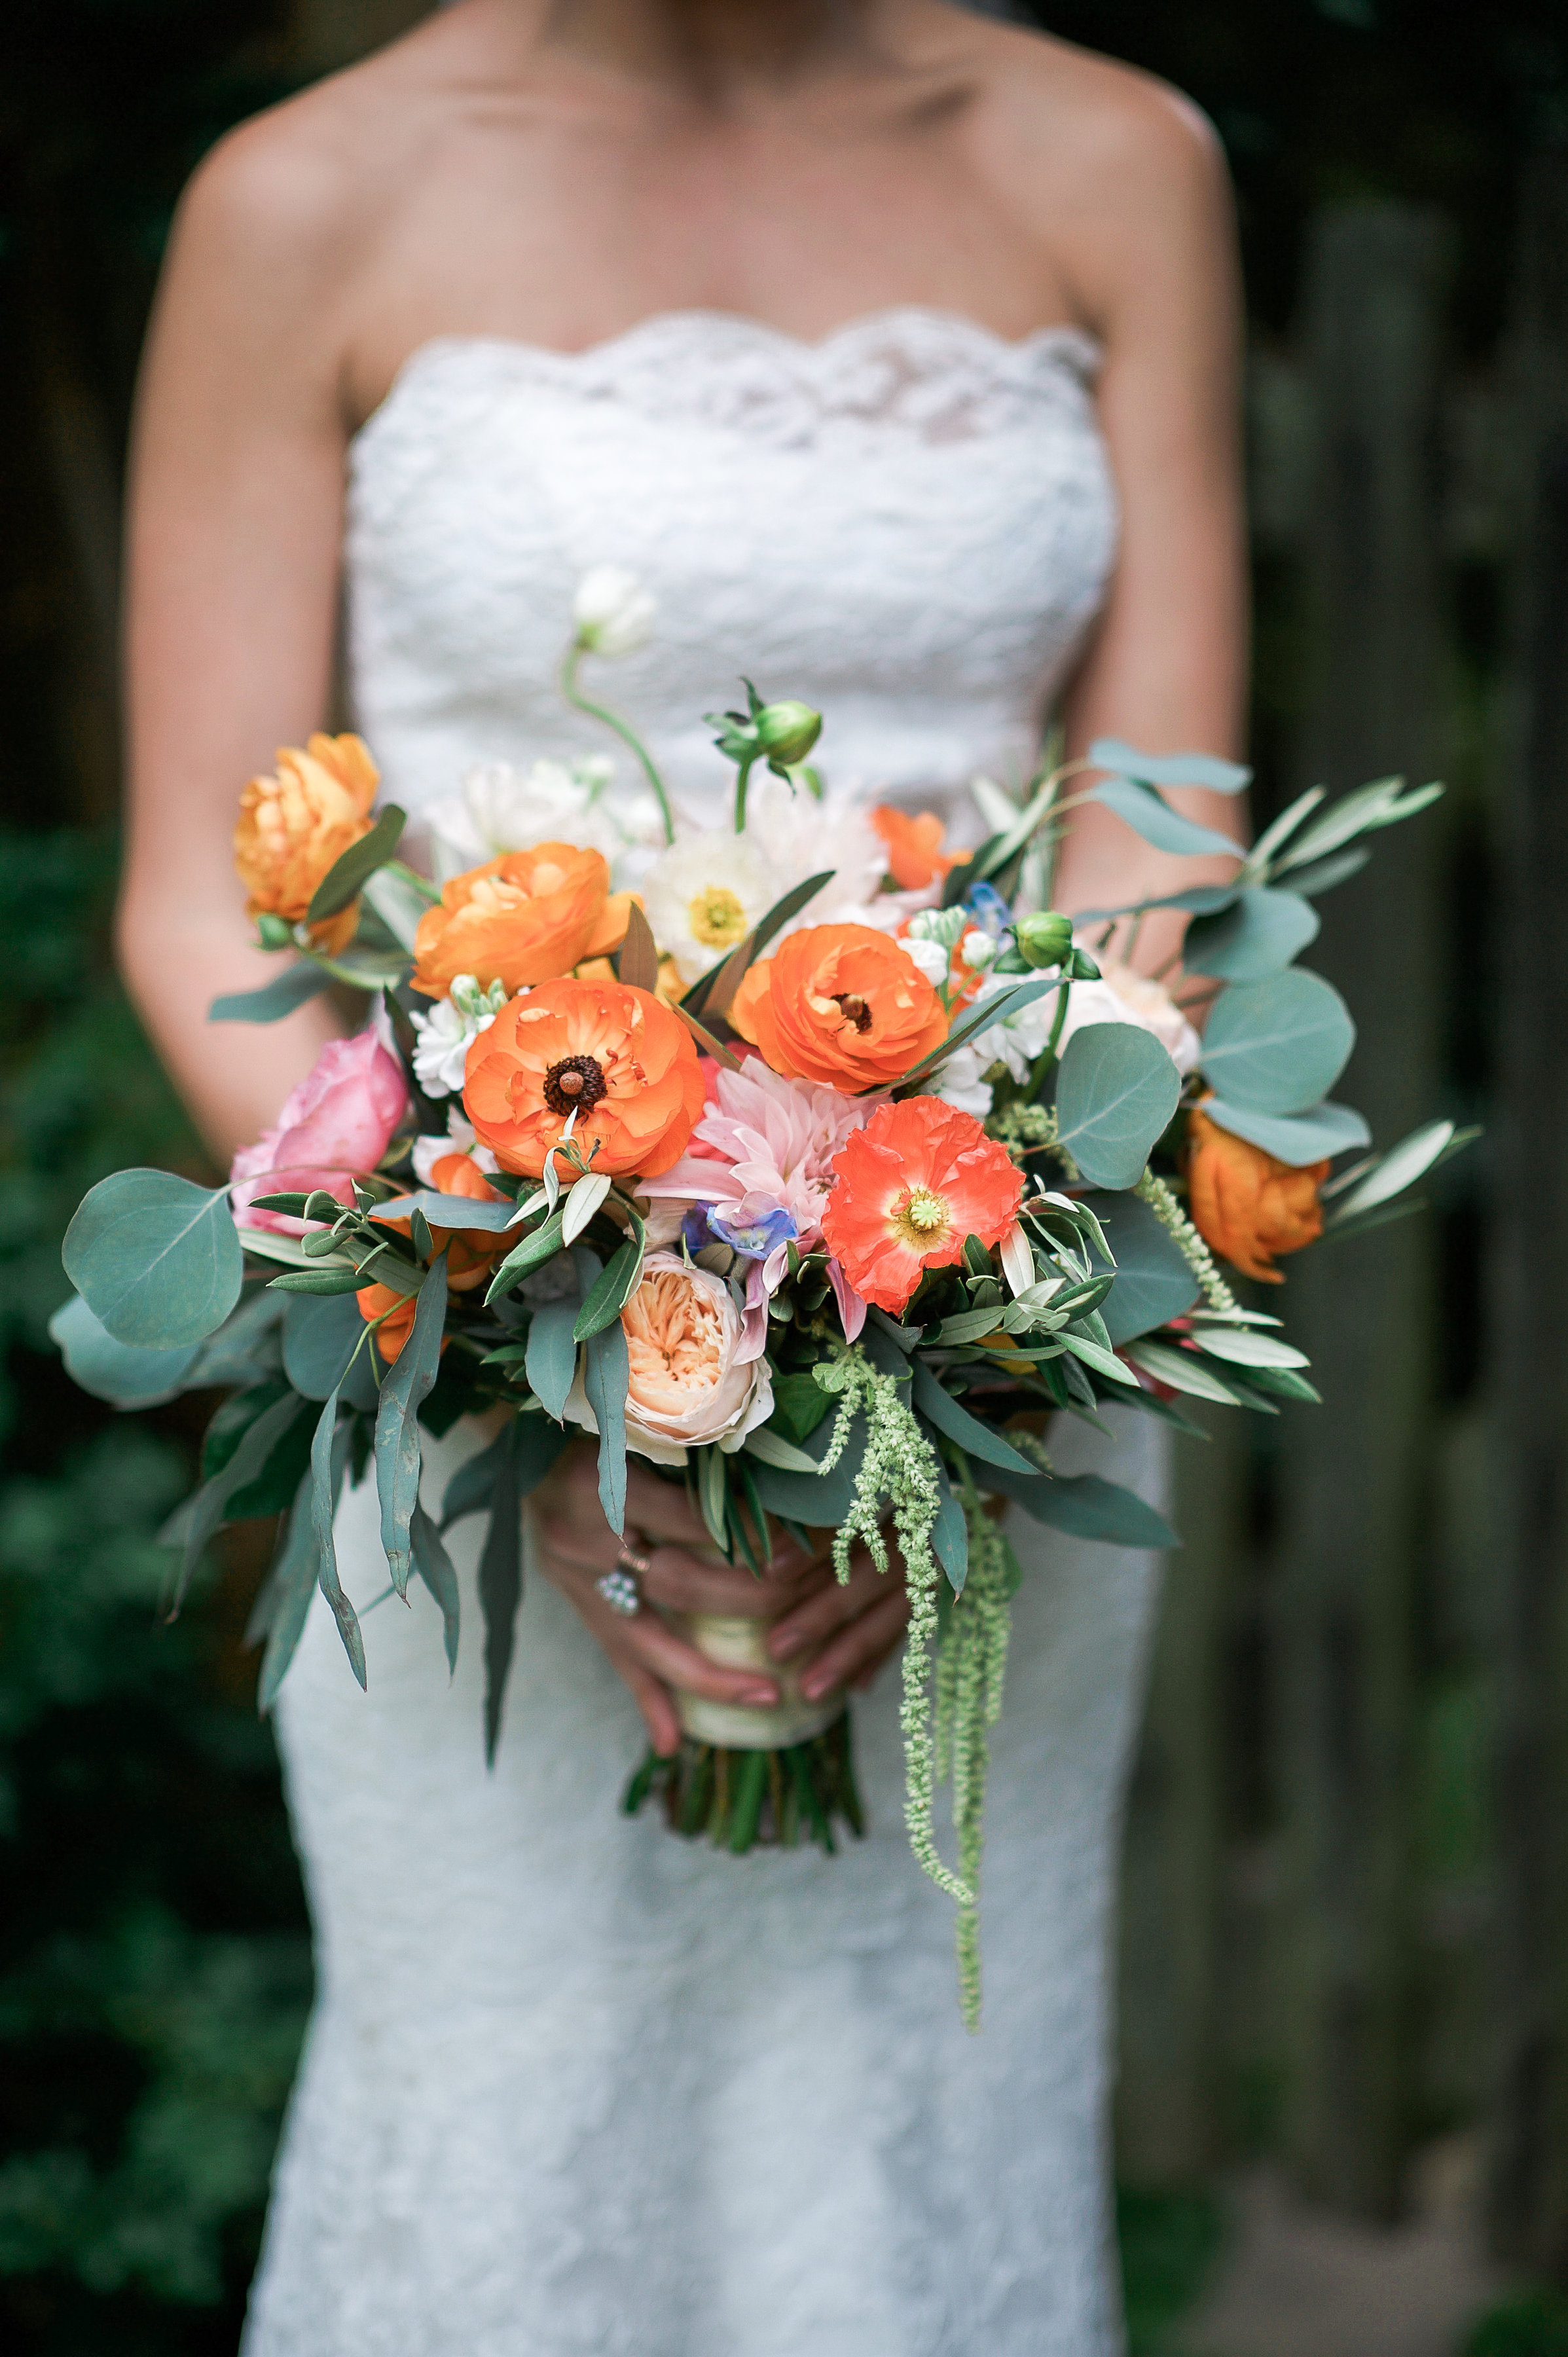 This JMU Coupleu0027s Rustic Virginia Barn Wedding Featured Dreamy Florals and a Traditional Iranian Sofreh Sheila & JMU Coupleu0027s Fusion Wedding with Bold Flowers and an Iranian Sofreh